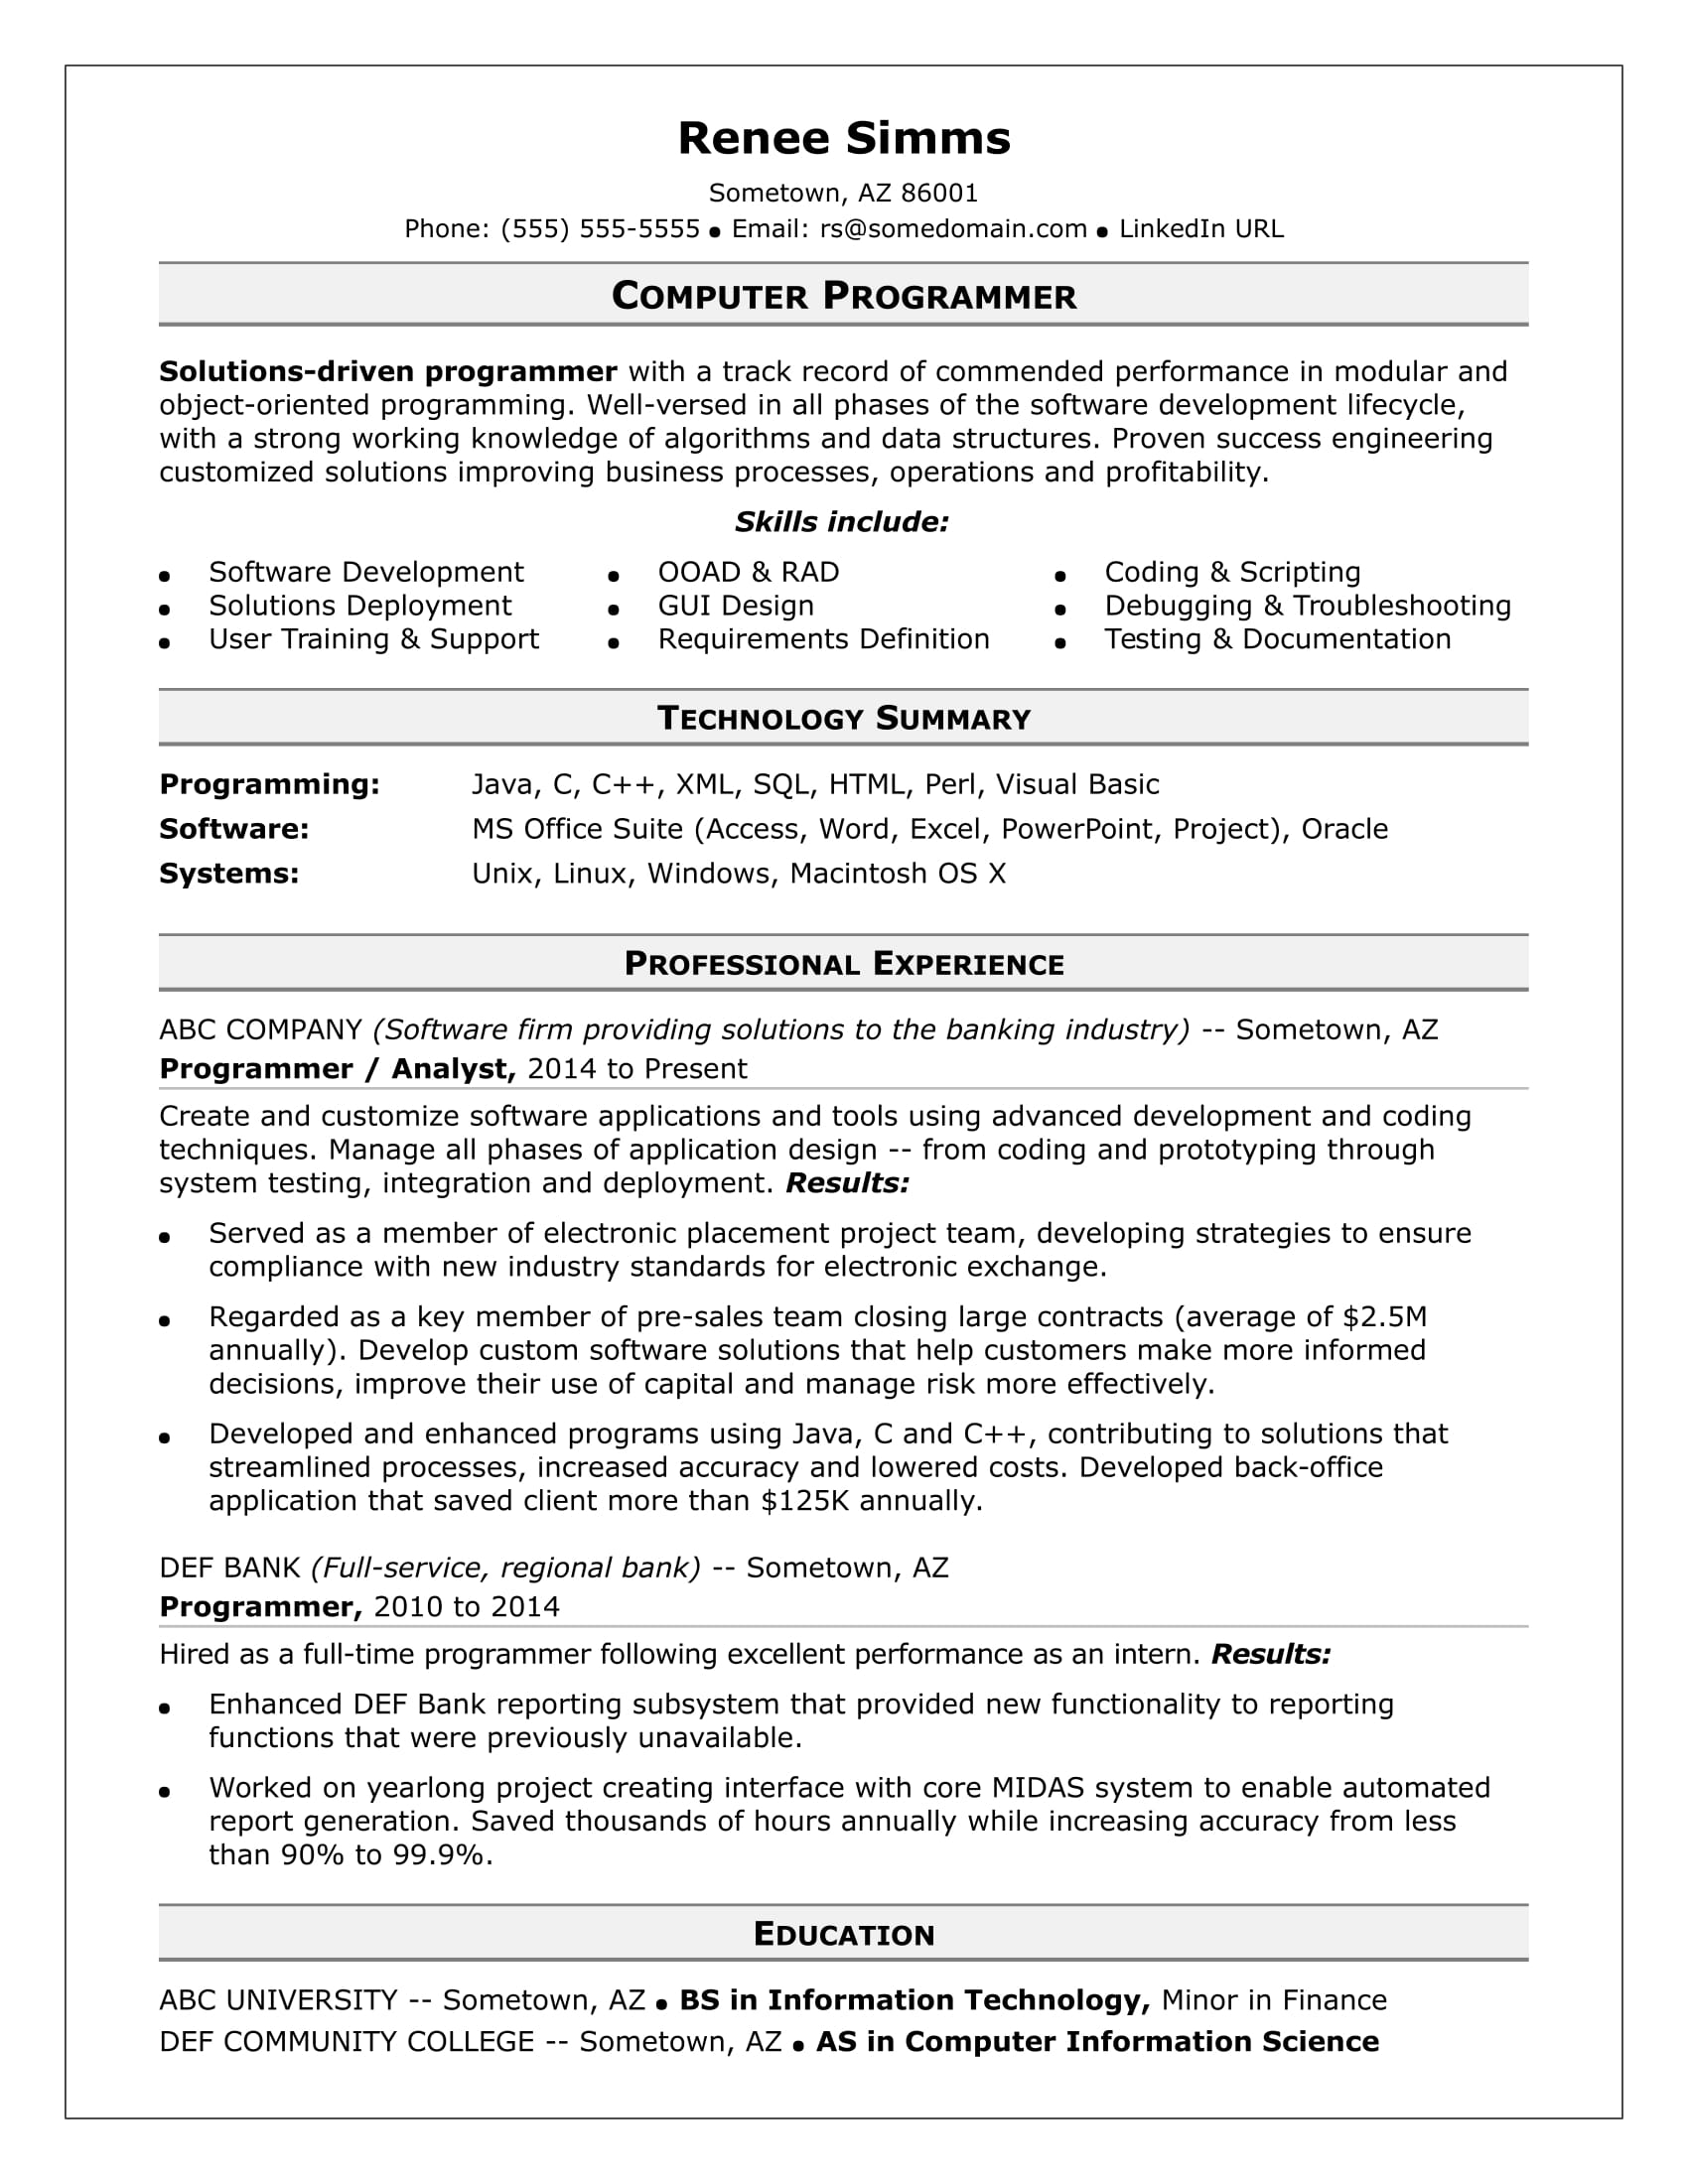 sample resume for a midlevel computer programmer - Sample Of Resume For University Application